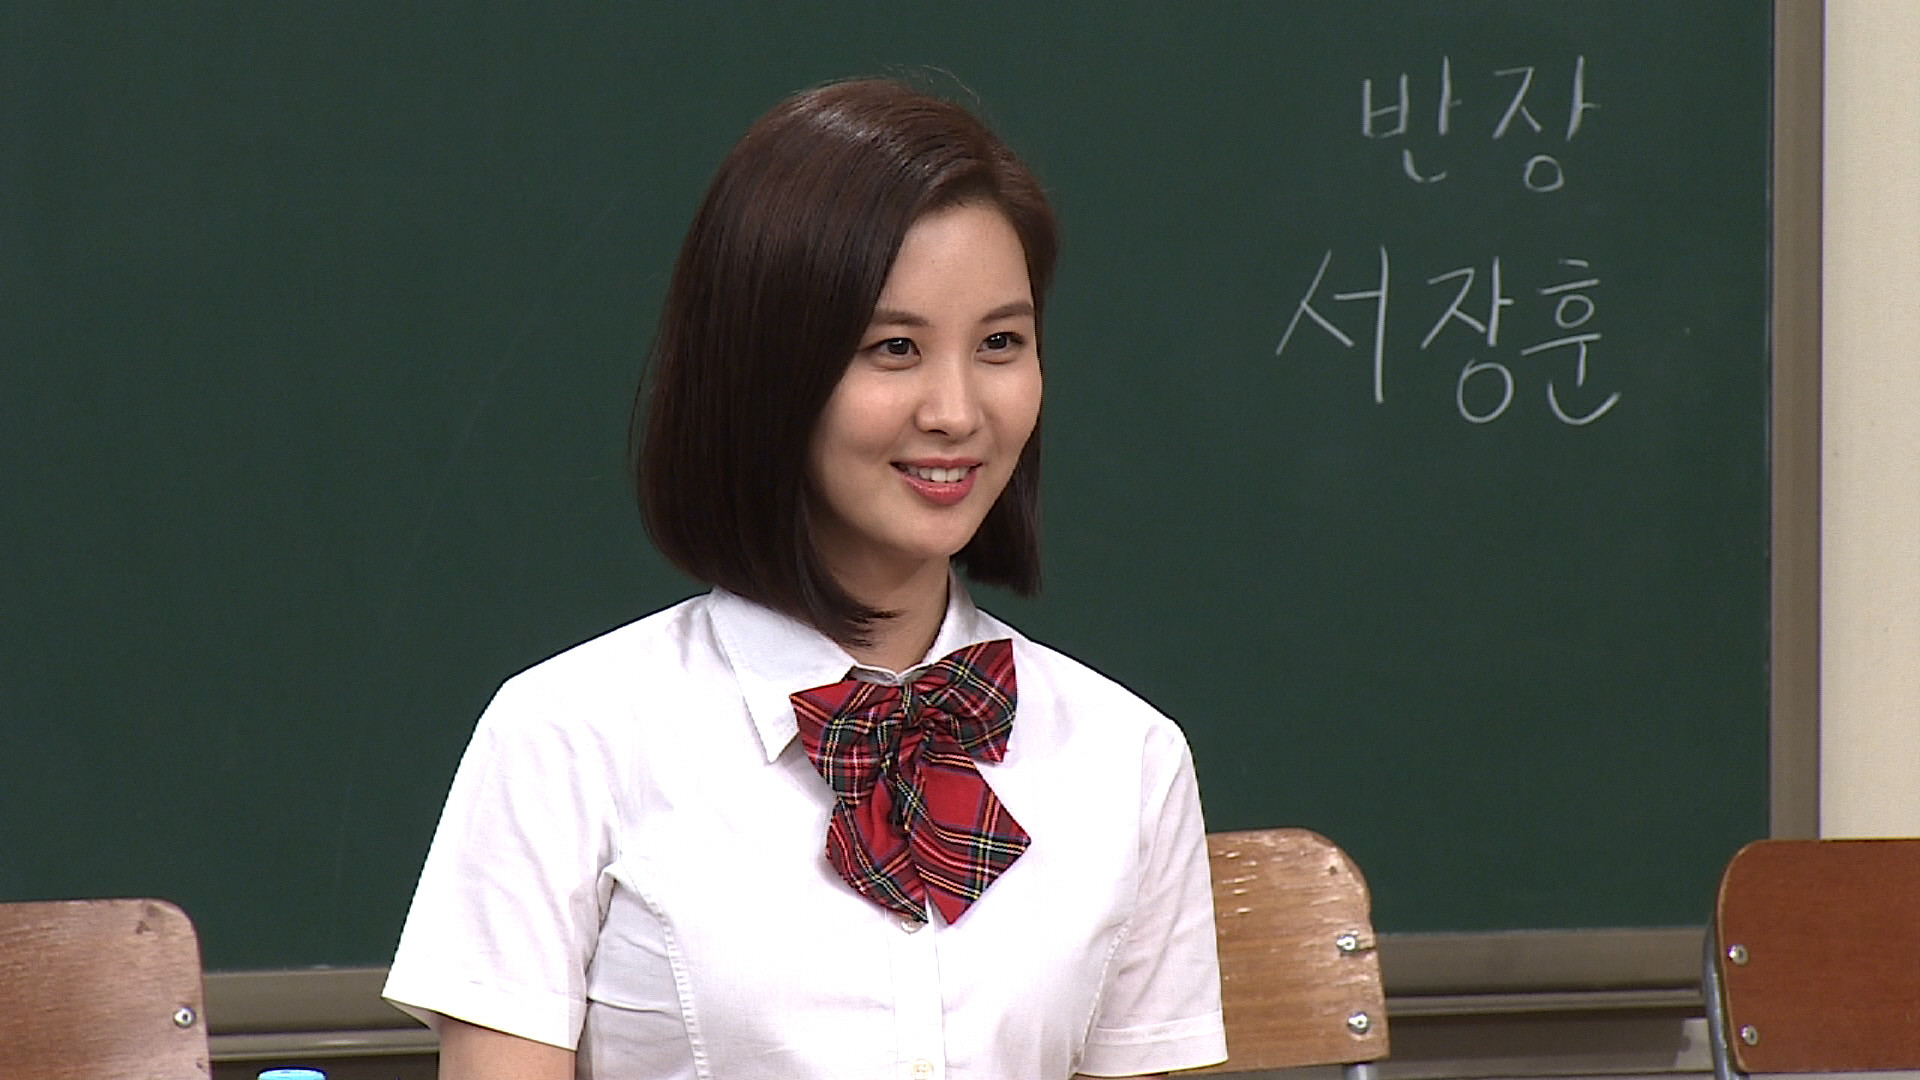 """Seohyun """"Yaja Time"""" (talking casually to each other) on 아는형님 Knowing Bro  this week"""